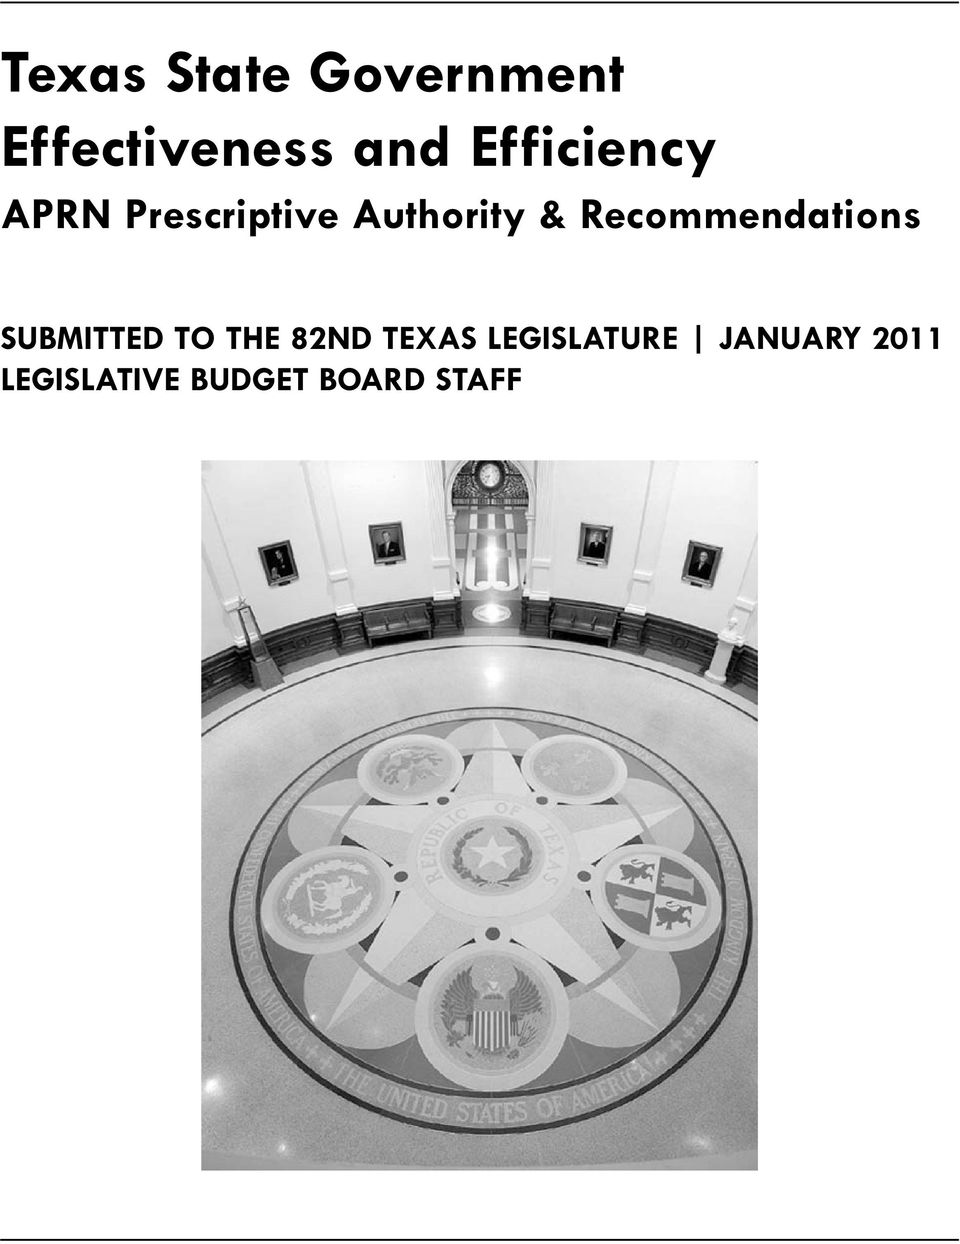 Recommendations SUBMITTED TO THE 82ND TEXAS